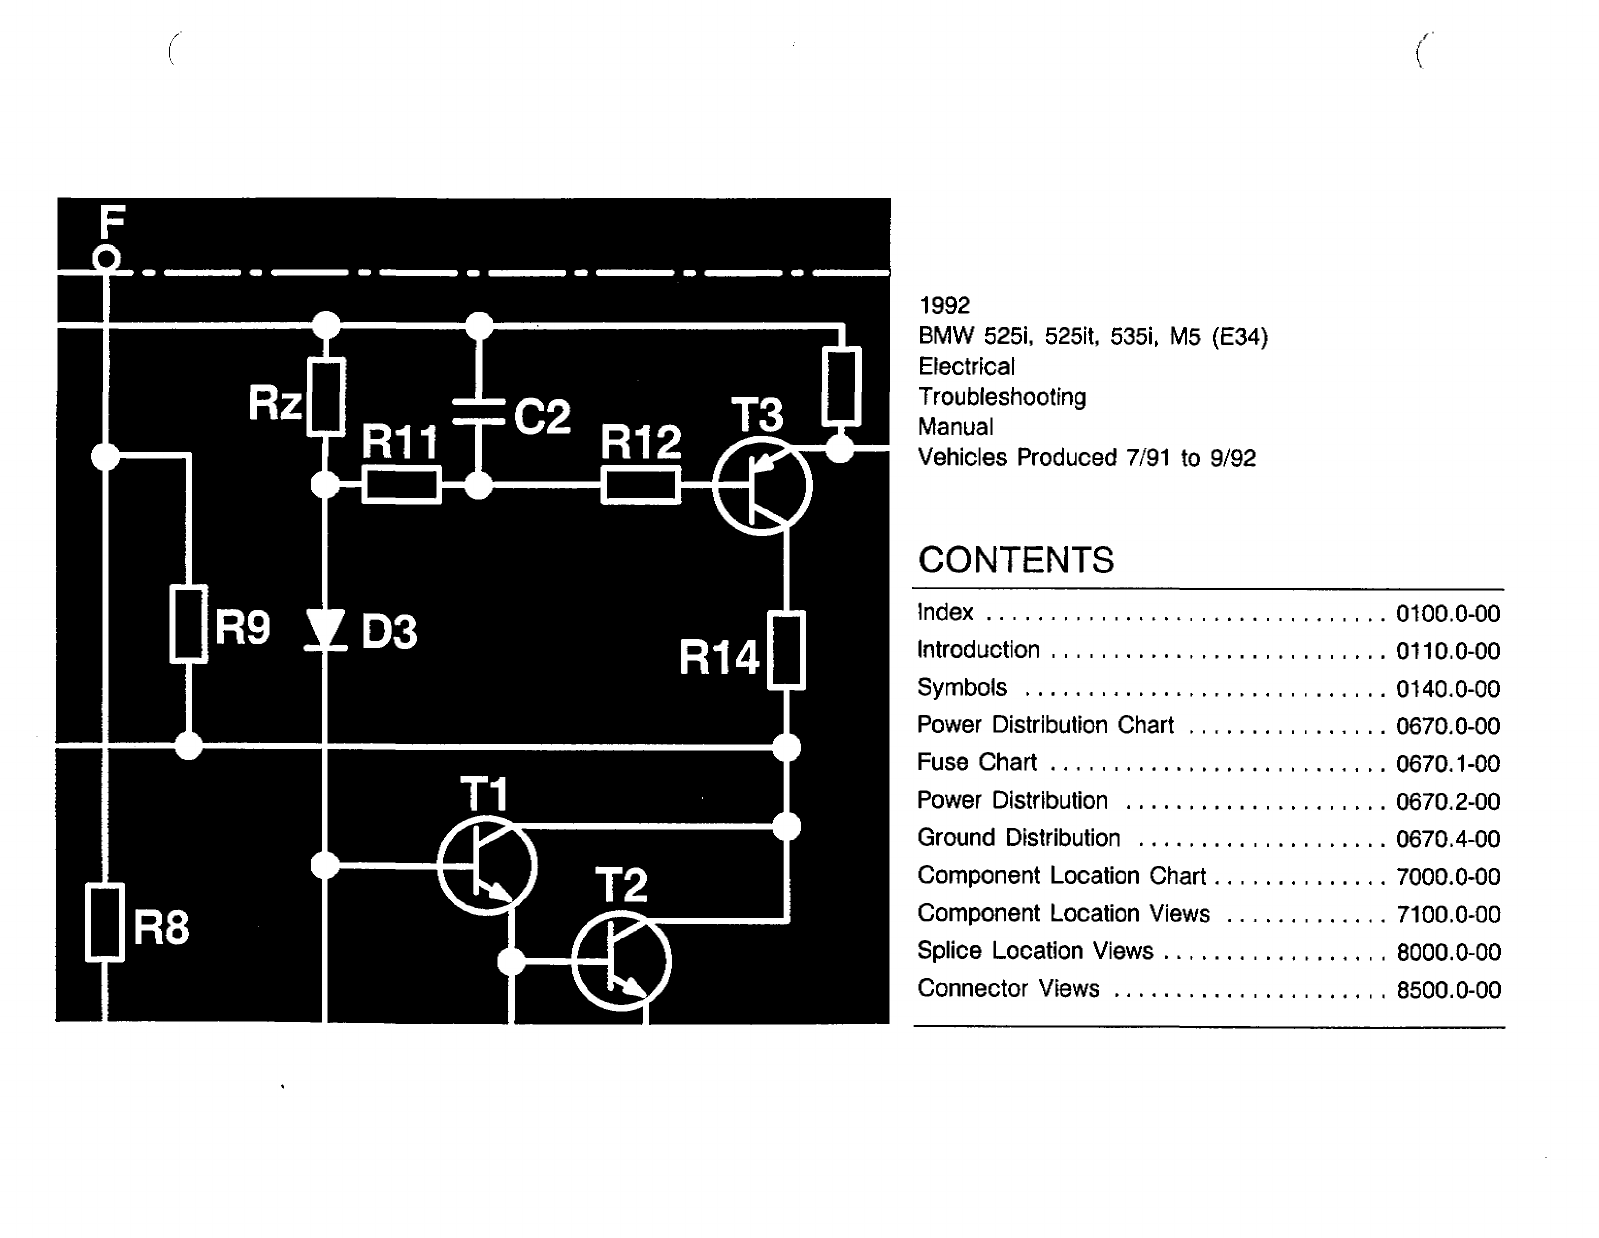 hight resolution of 1992 bmw 525i fuse diagram